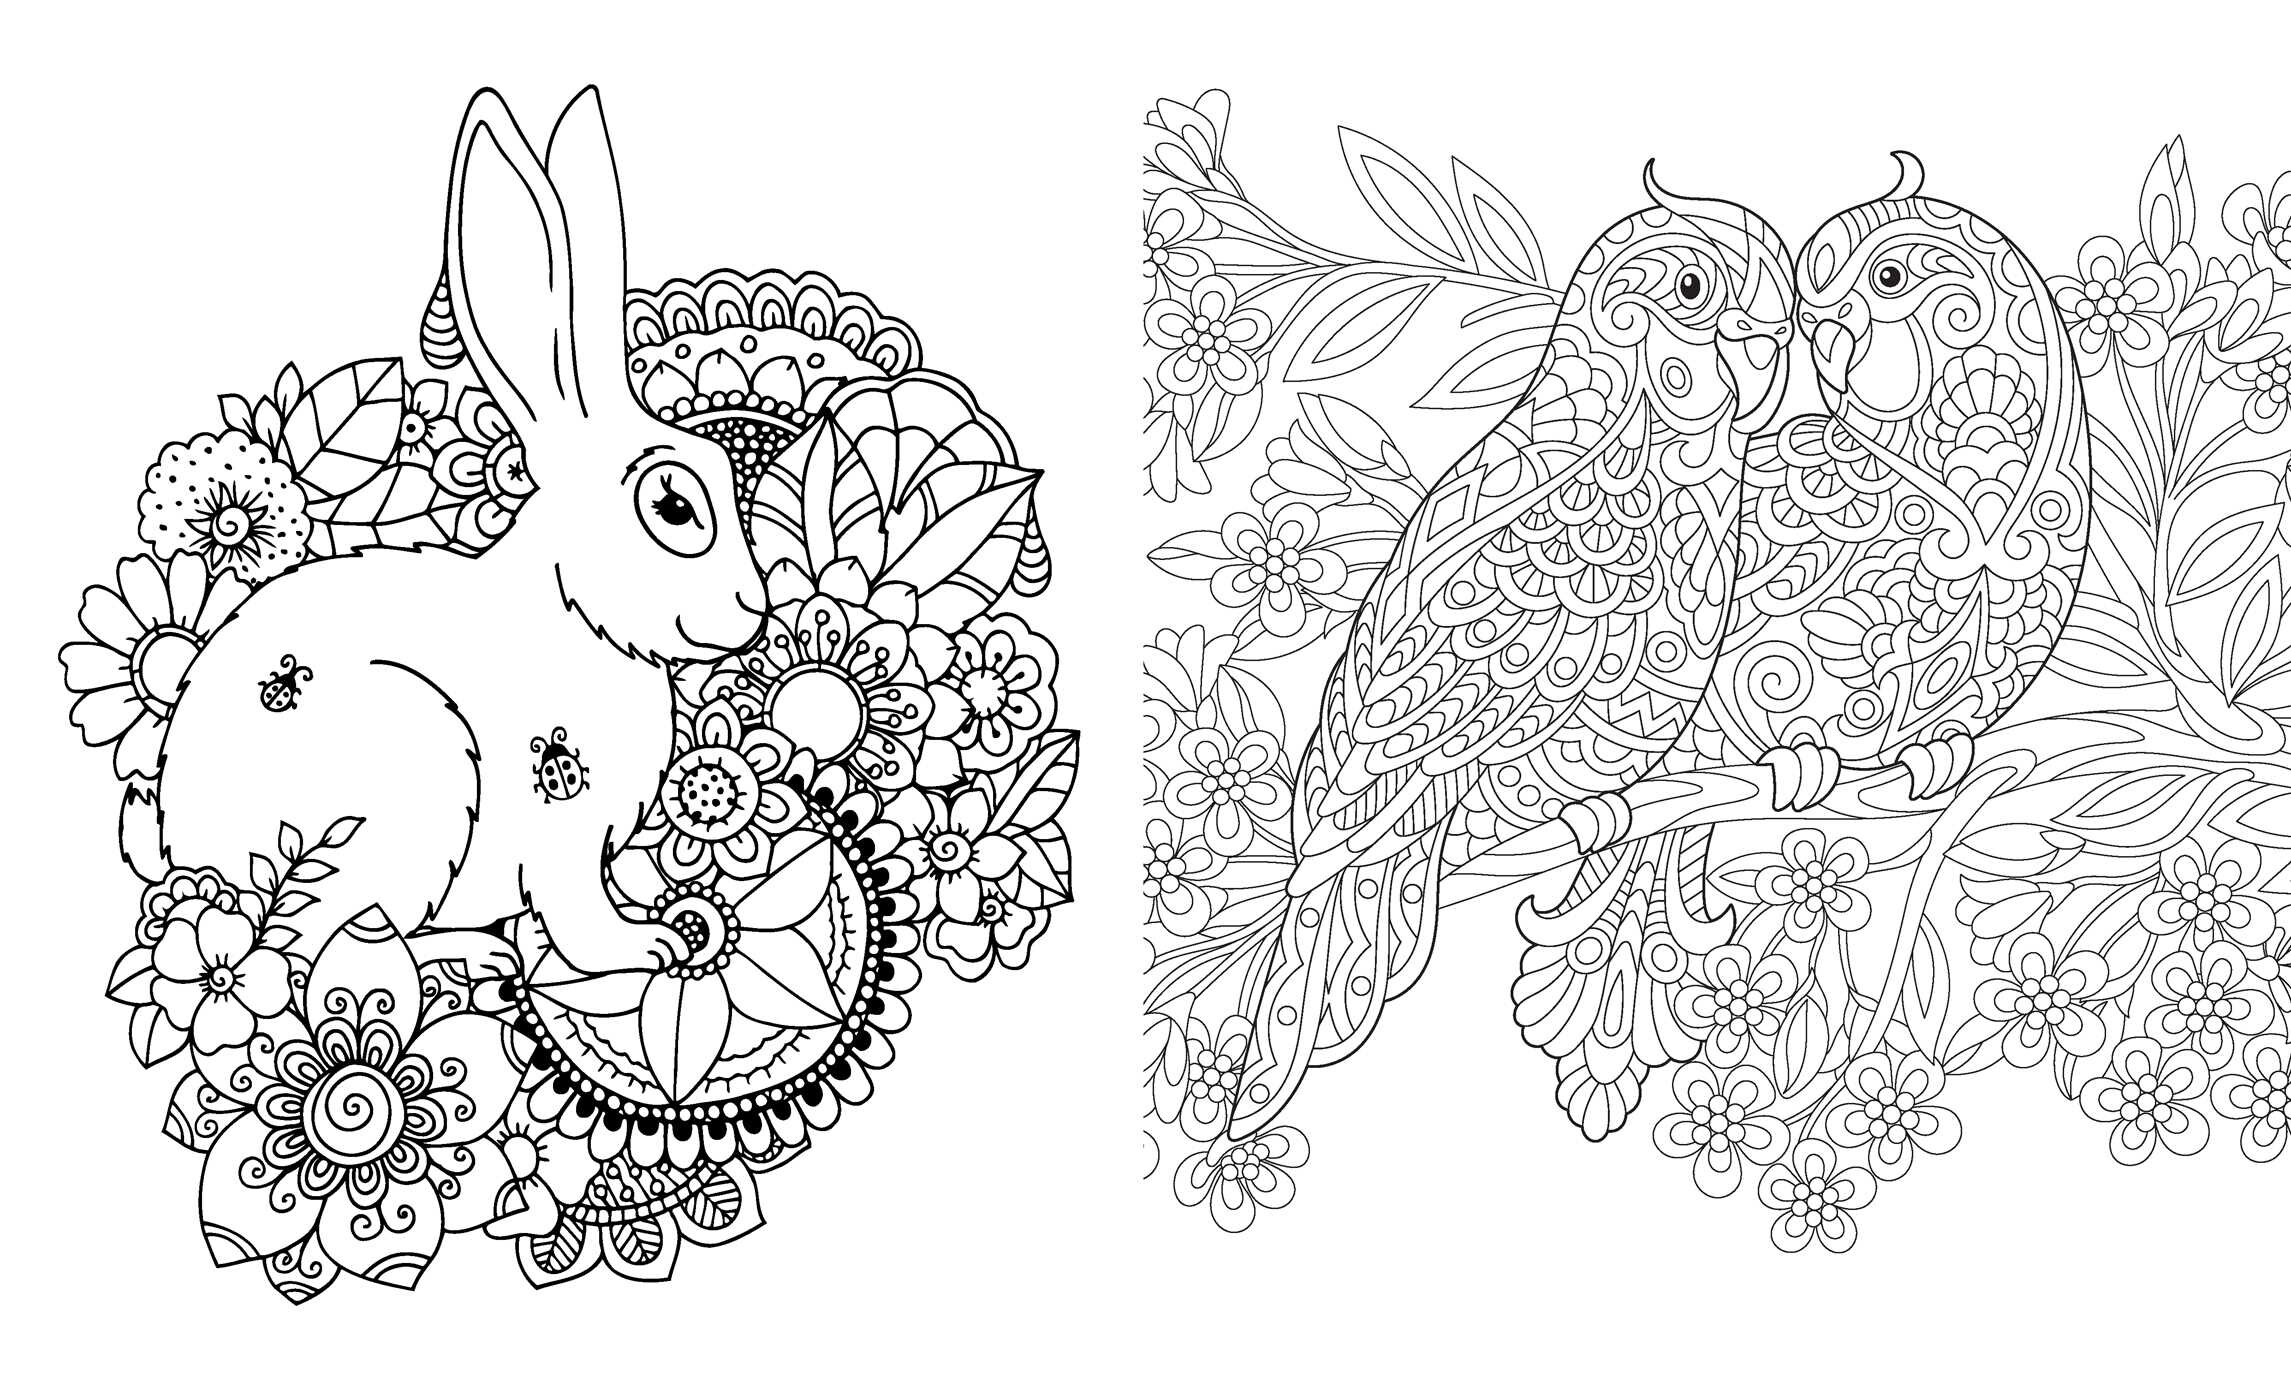 Posh Glitter Coloring Book Secret Garden Book By Andrews Mcmeel Publishing Official Publisher Page Simon Schuster